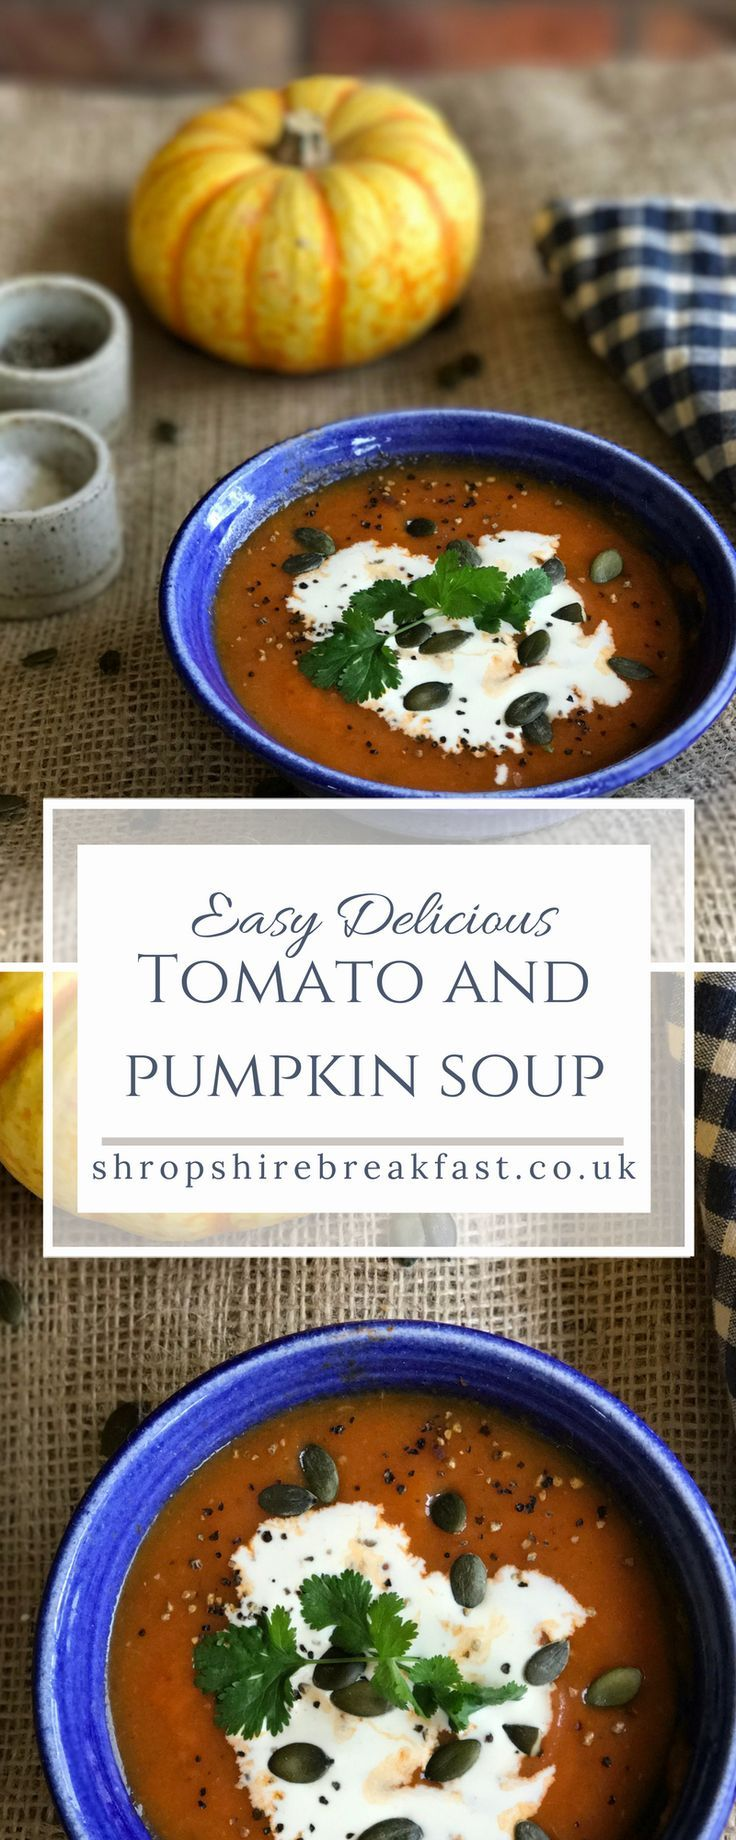 An easy and delicious pumpkin and tomato soup recipe | very quick and easy to make | only 70 calories per bowl | can also be made with courgettes or marrows | try it today!